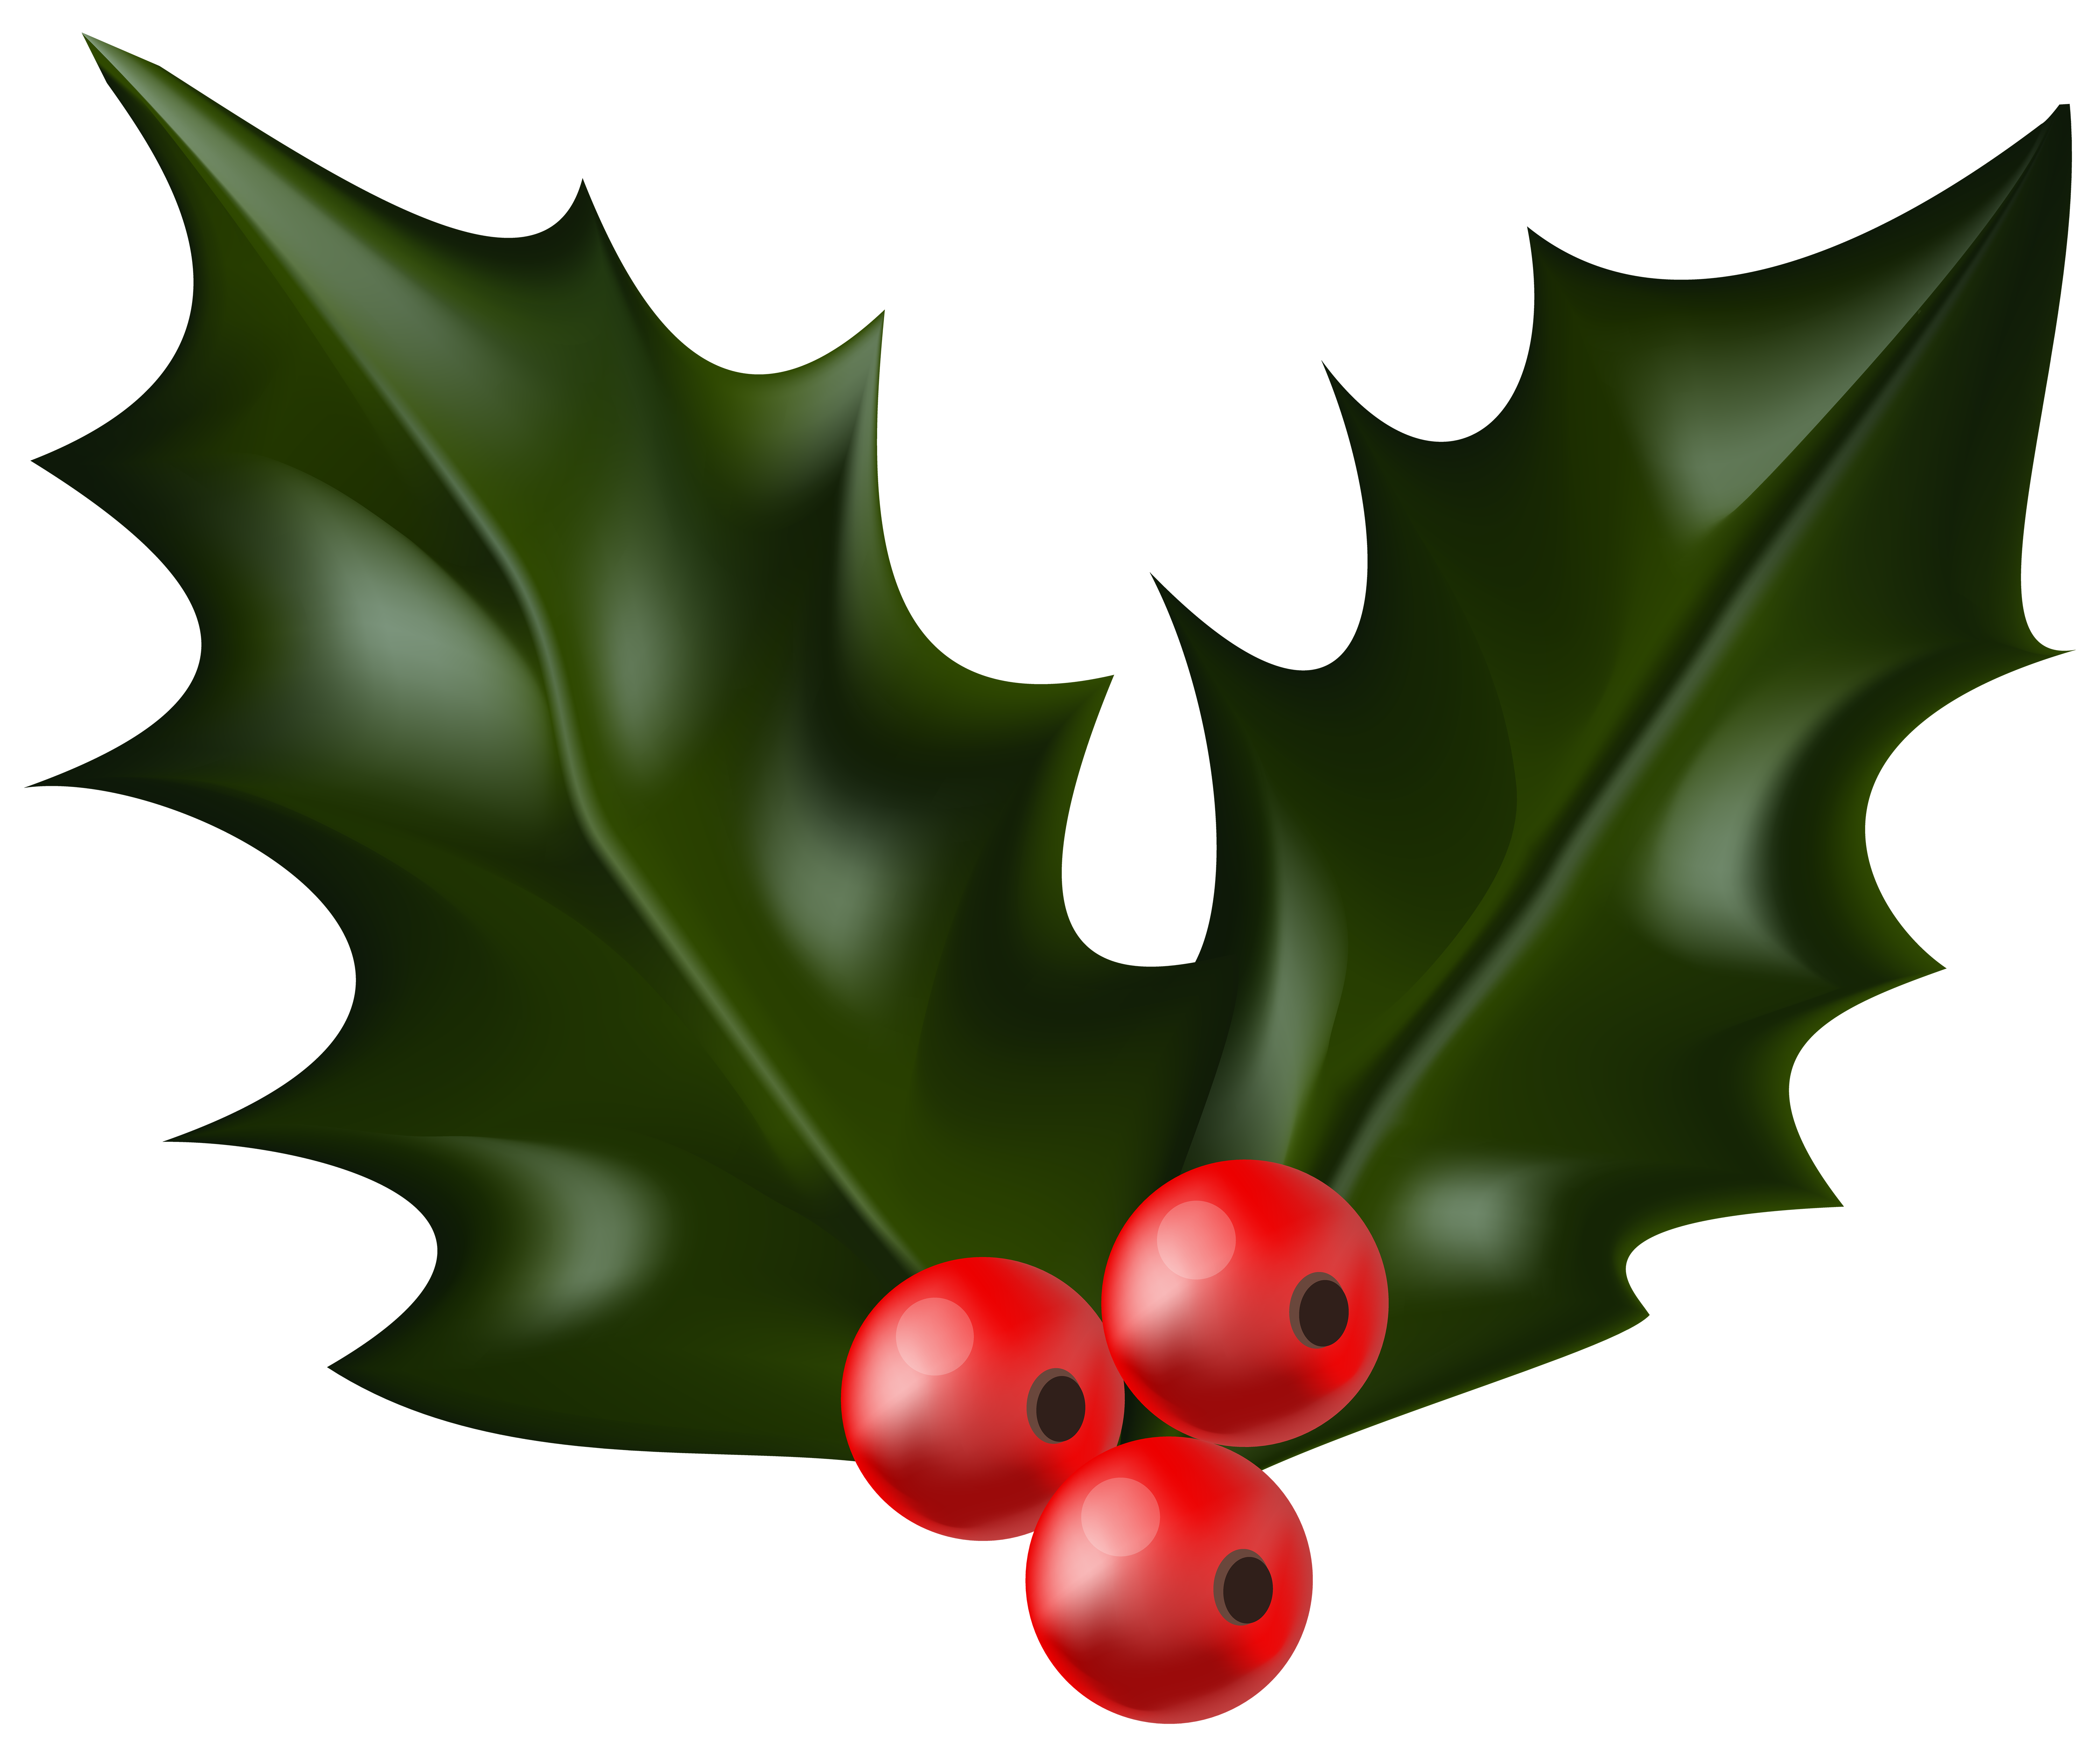 Christmas clipart holly image black and white Mistletoe Clipart at GetDrawings.com | Free for personal use ... image black and white